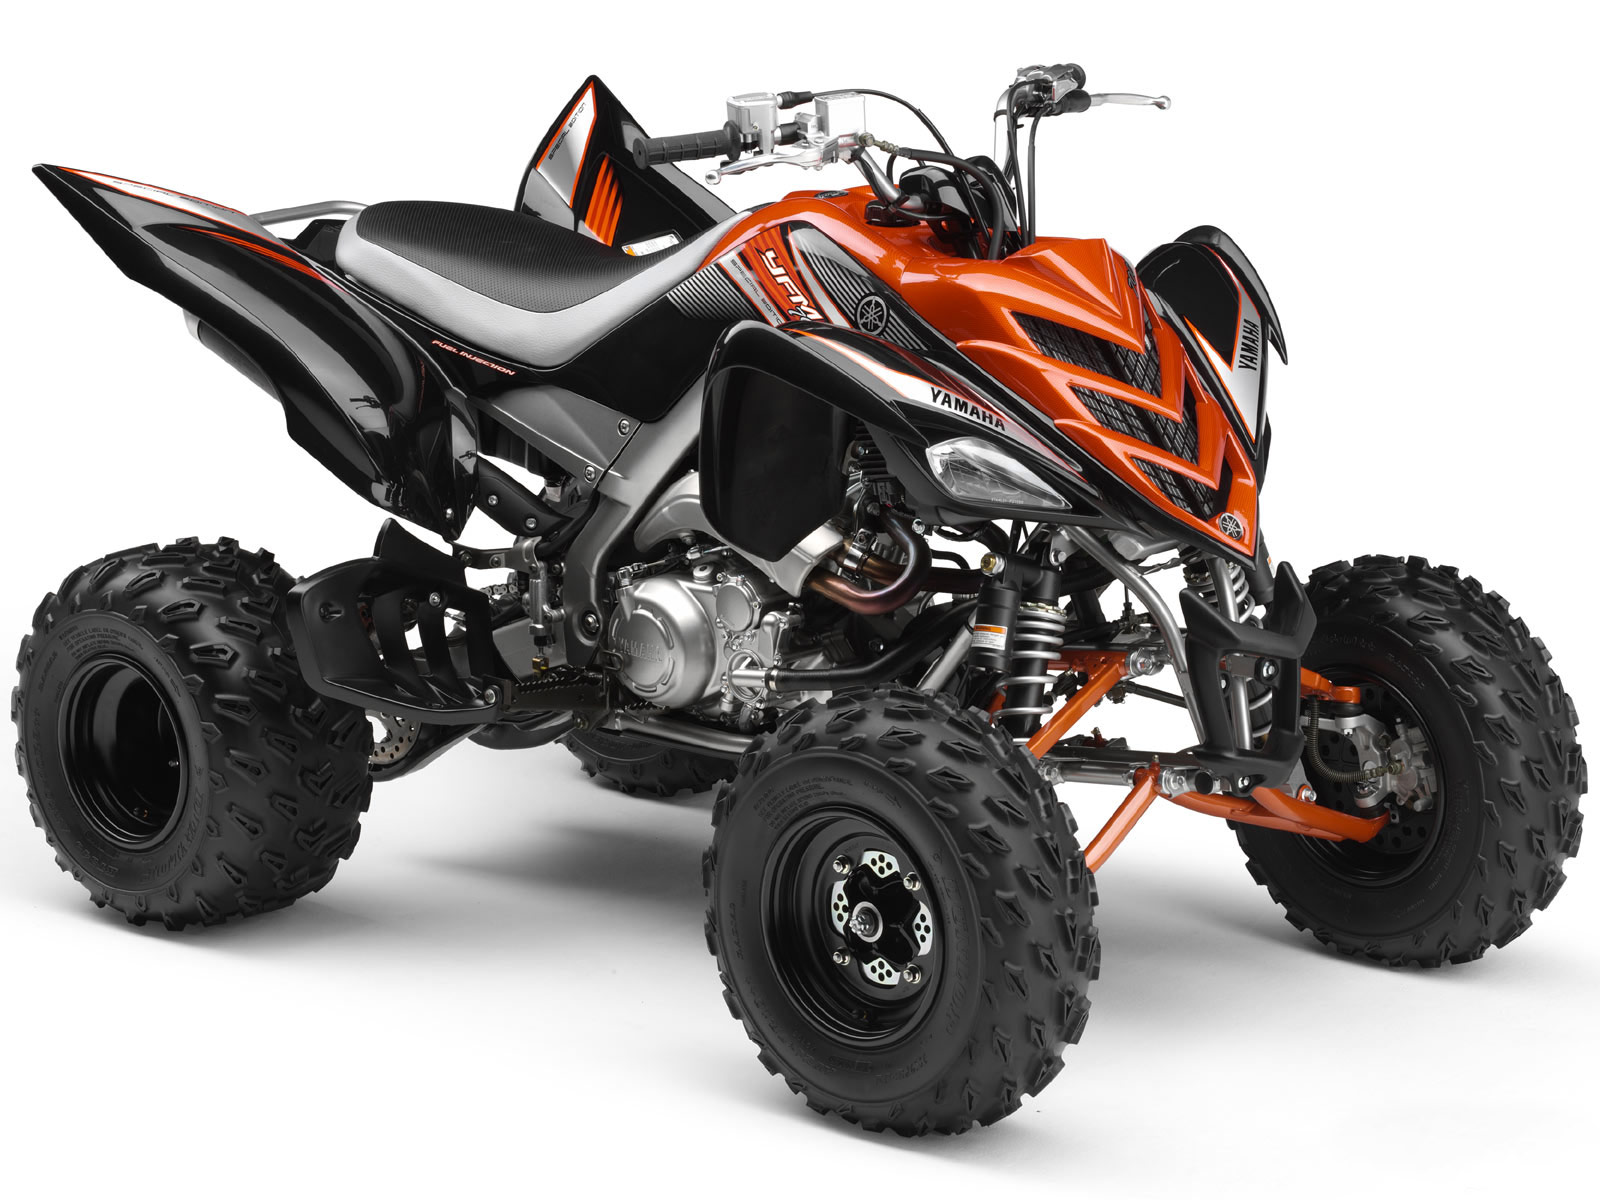 2007 yamaha raptor 700r atv accident lawyers wallpapers. Black Bedroom Furniture Sets. Home Design Ideas